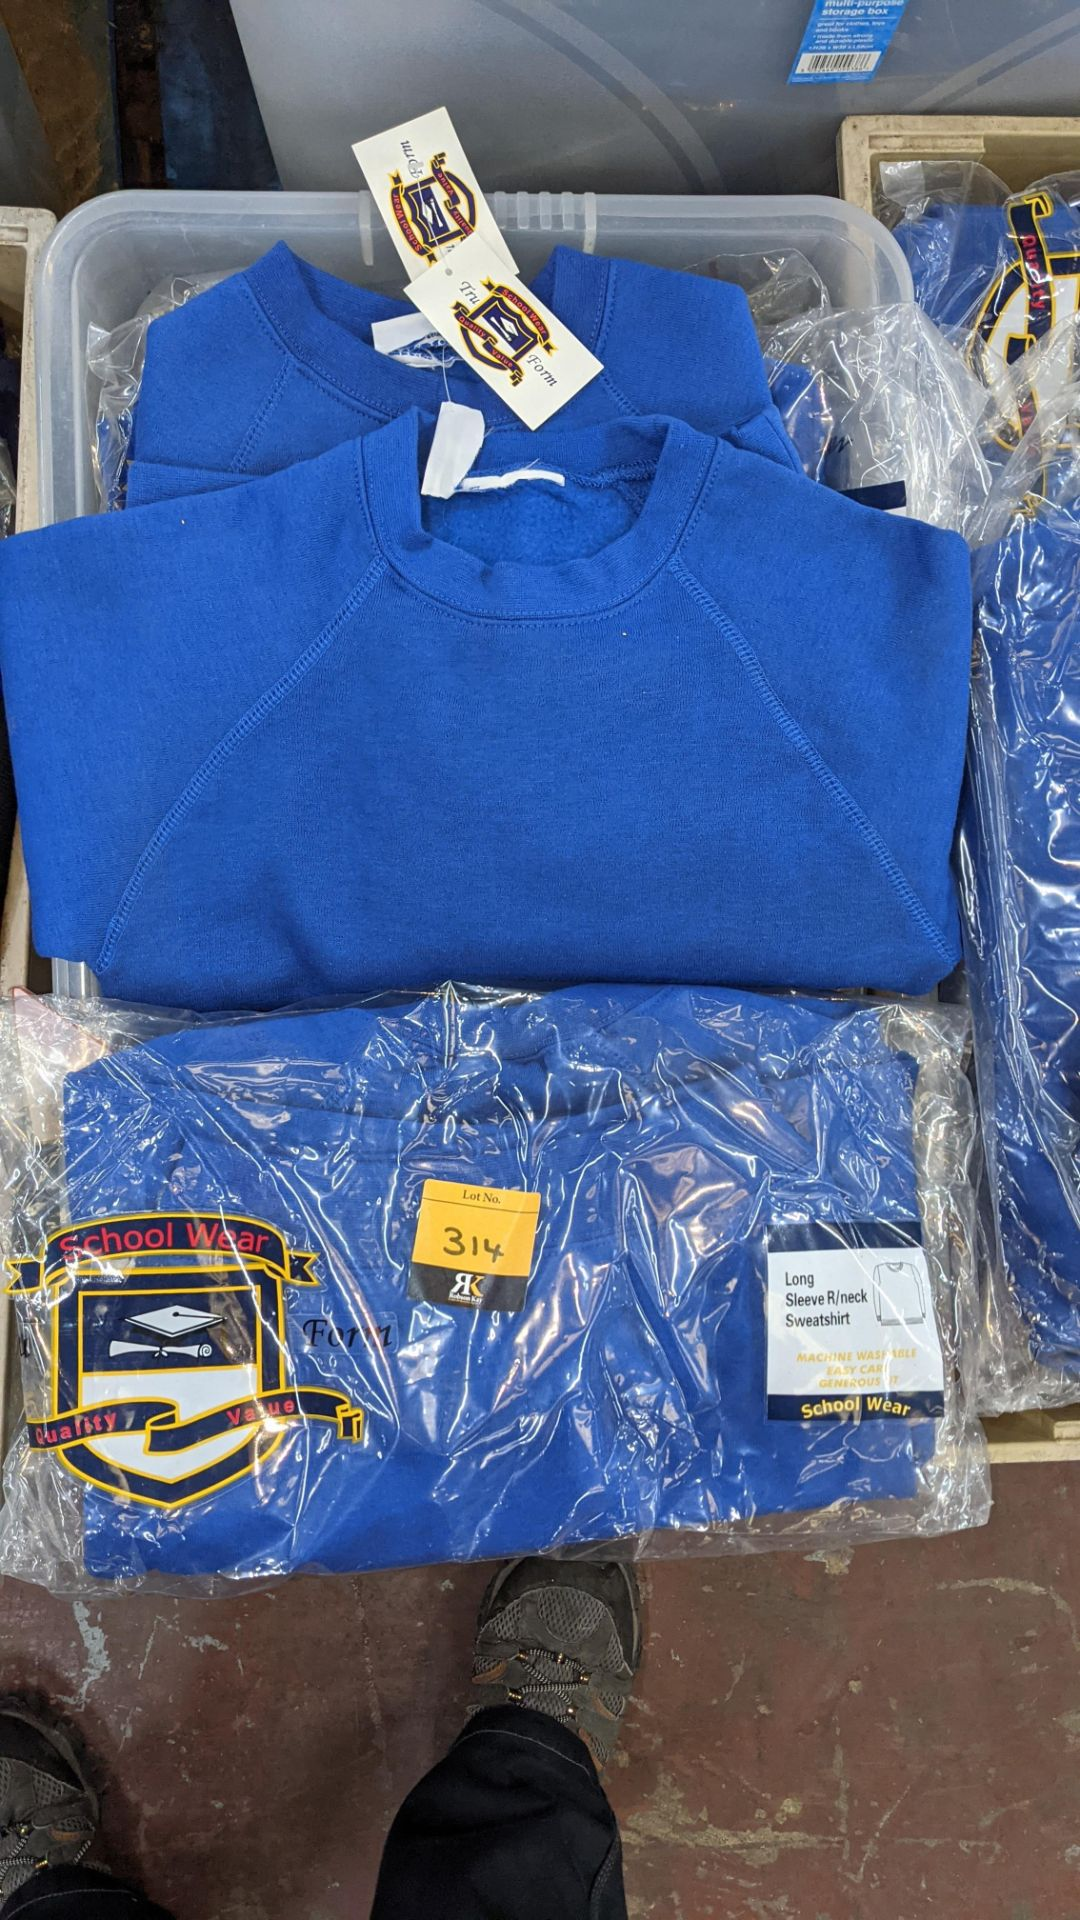 Approx 26 off blue children's sweatshirts & similar - the contents of 1 crate. NB crate excluded - Image 3 of 4